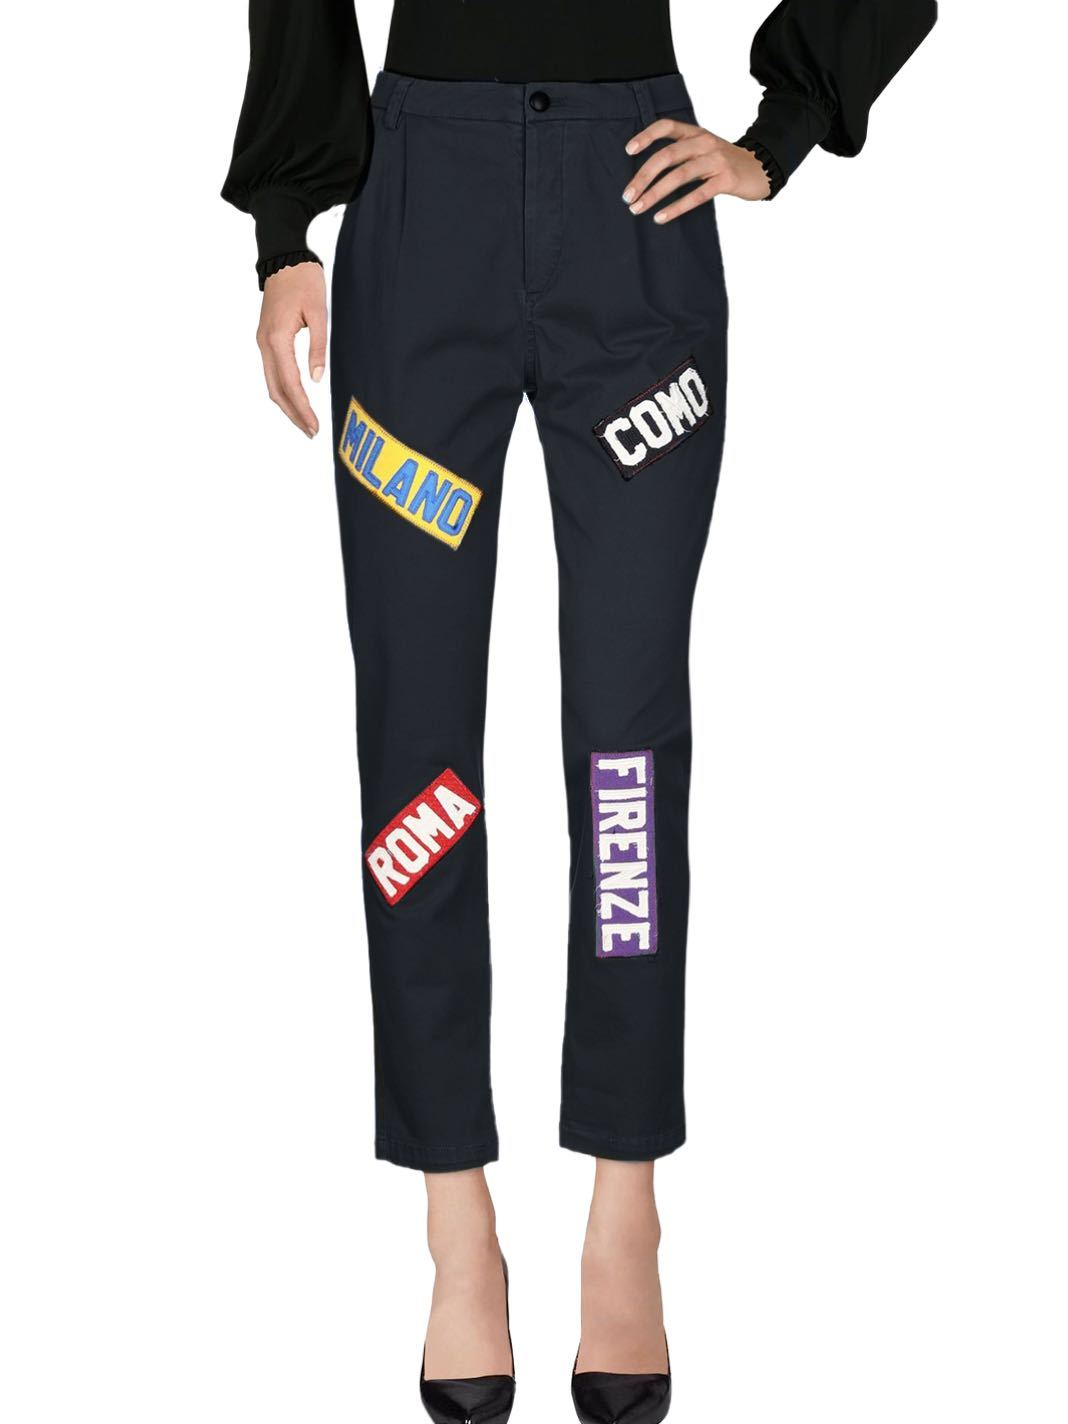 Cities-Patch Trousers - The Bobby Boga